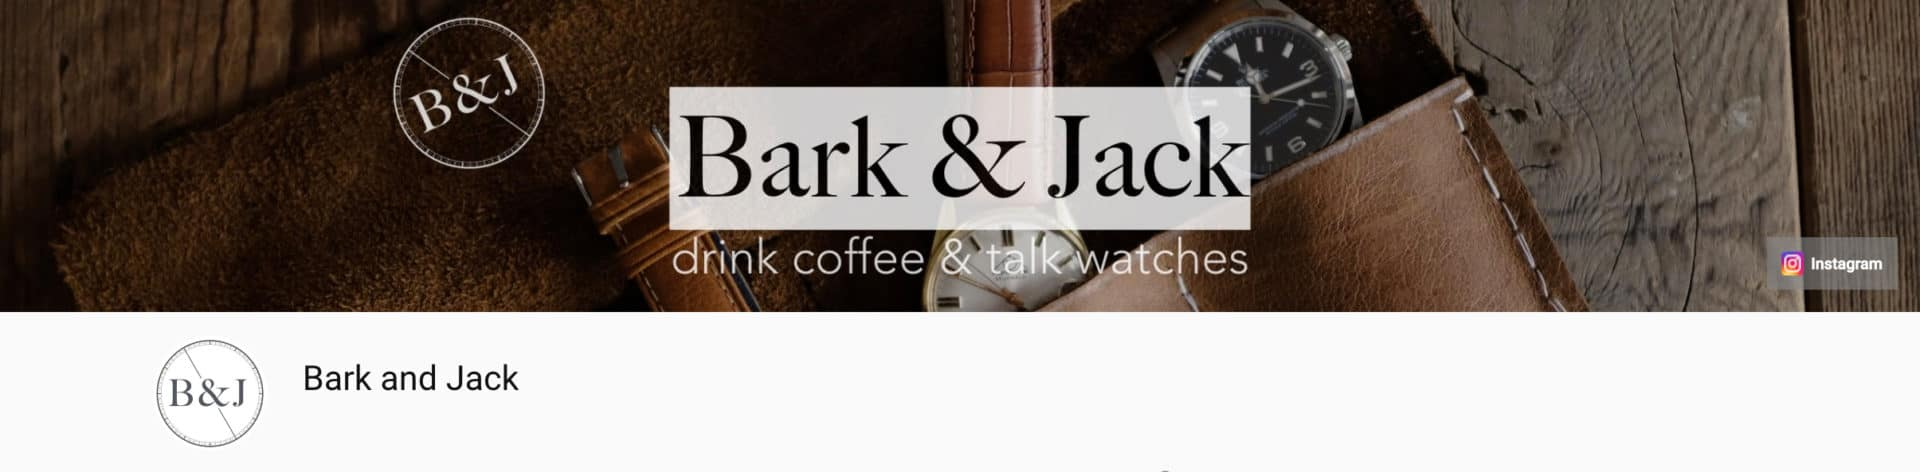 yt bark and jack